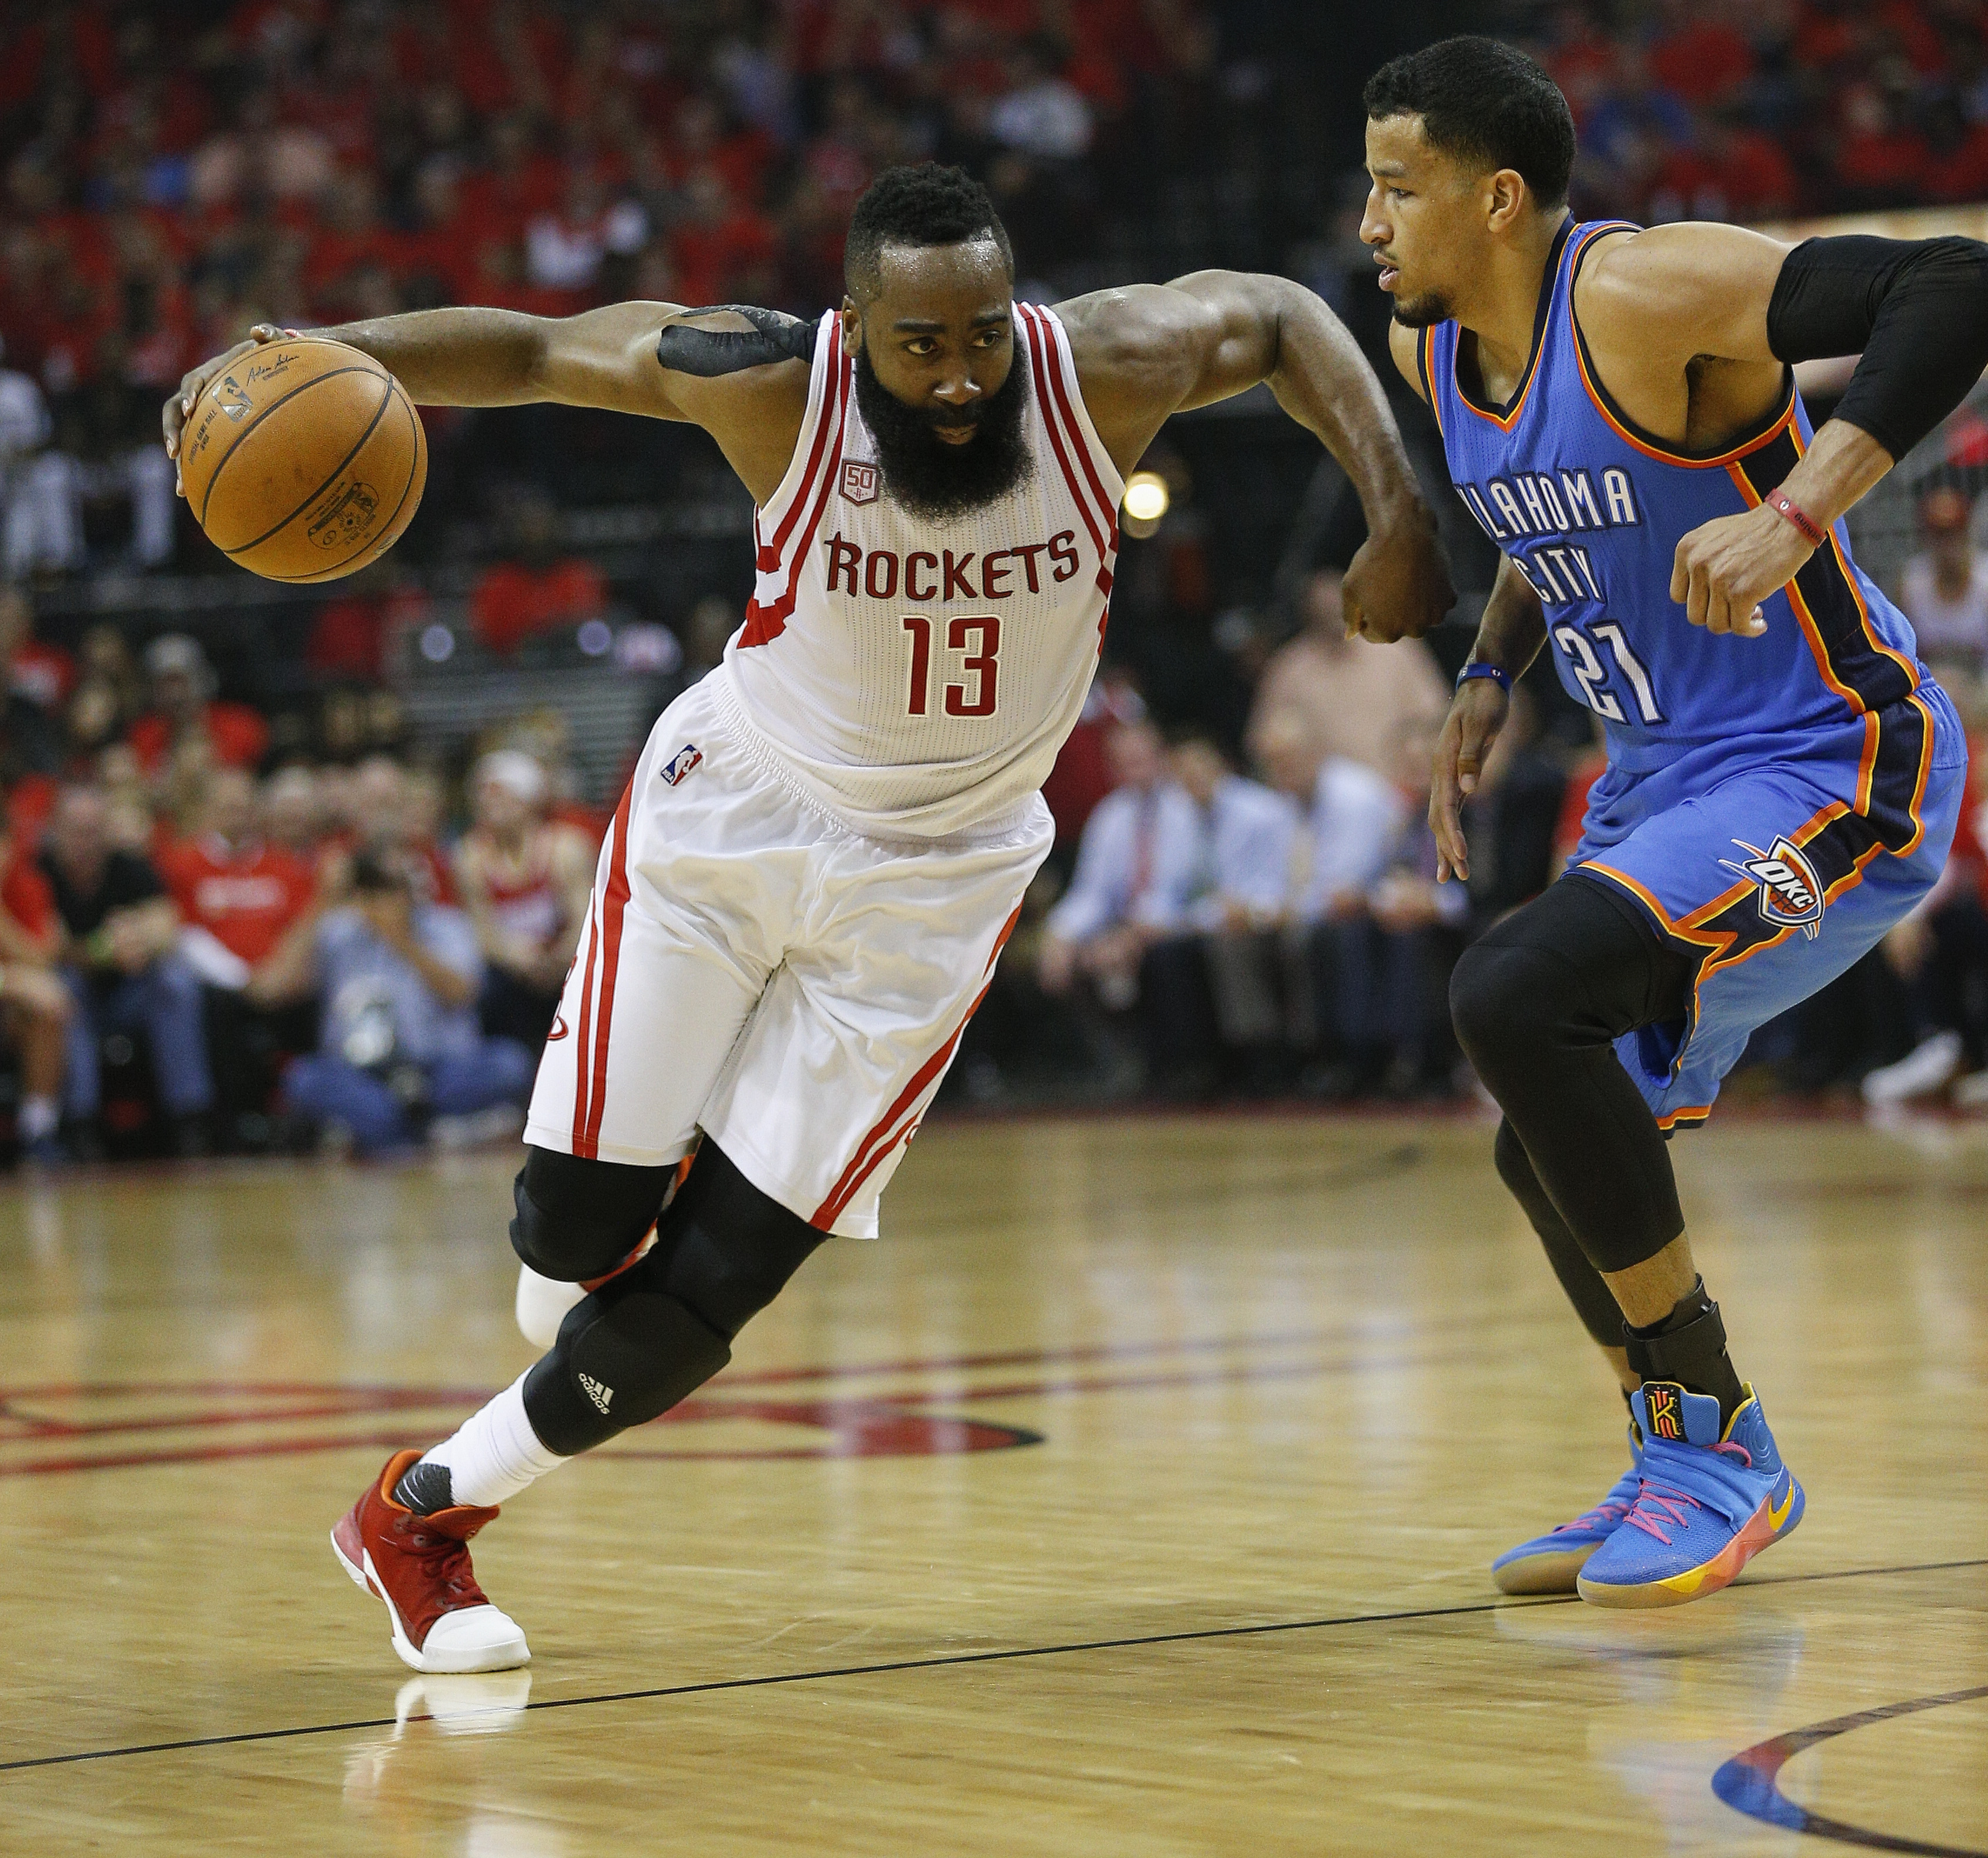 Rockets Vs Okc Game 6: Welcome To Loud City, An Oklahoma City Thunder Community